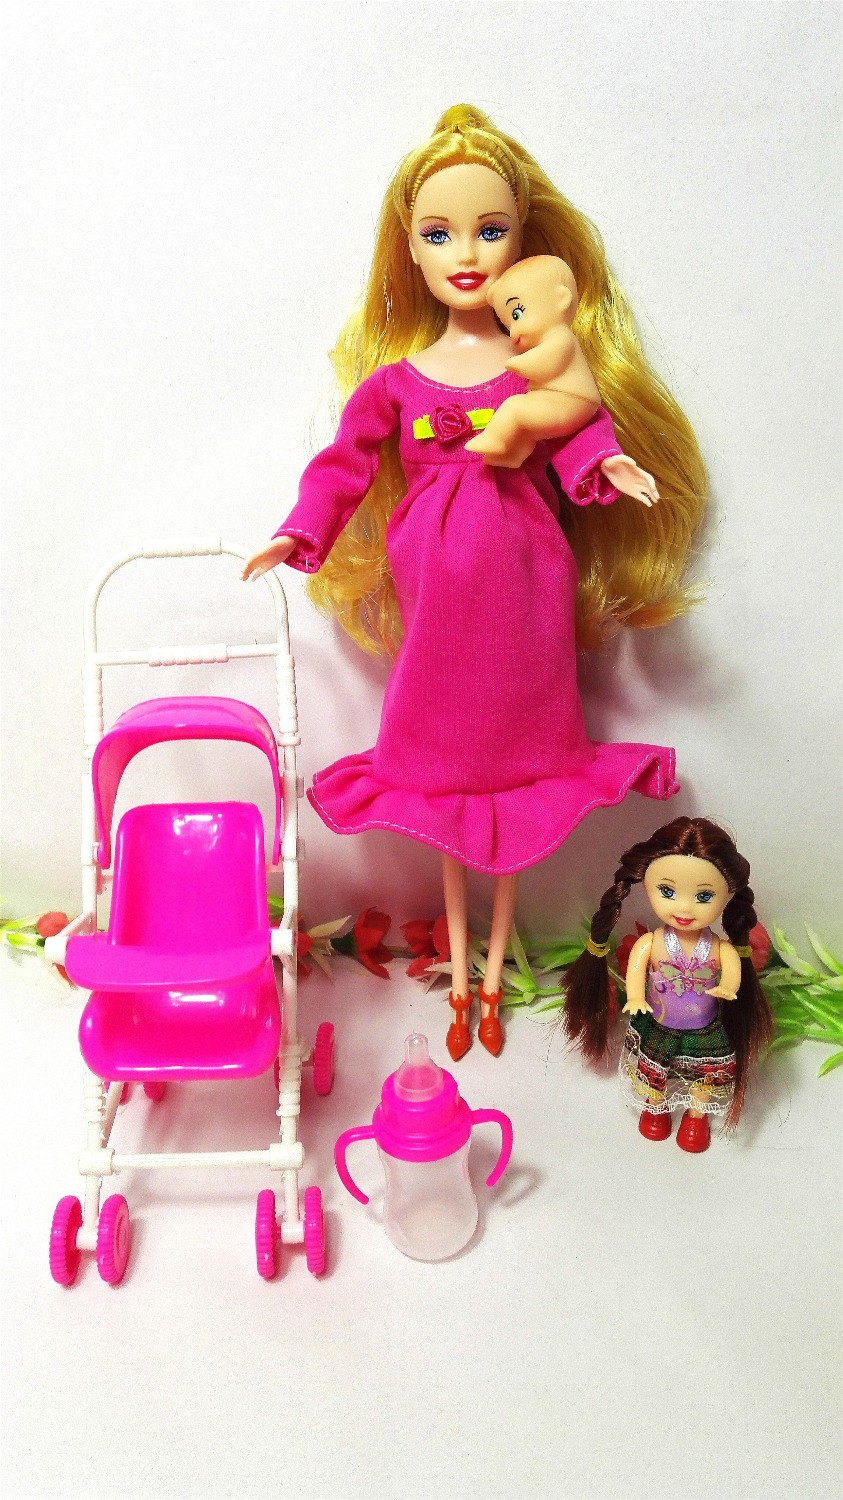 Hot Sale Dollhouse Furniture Children Play House Sets For Pregnant Barbie Doll  Baby Stroller Trolley Nursery Furniture Toy Kelly In Dolls From Toys ...